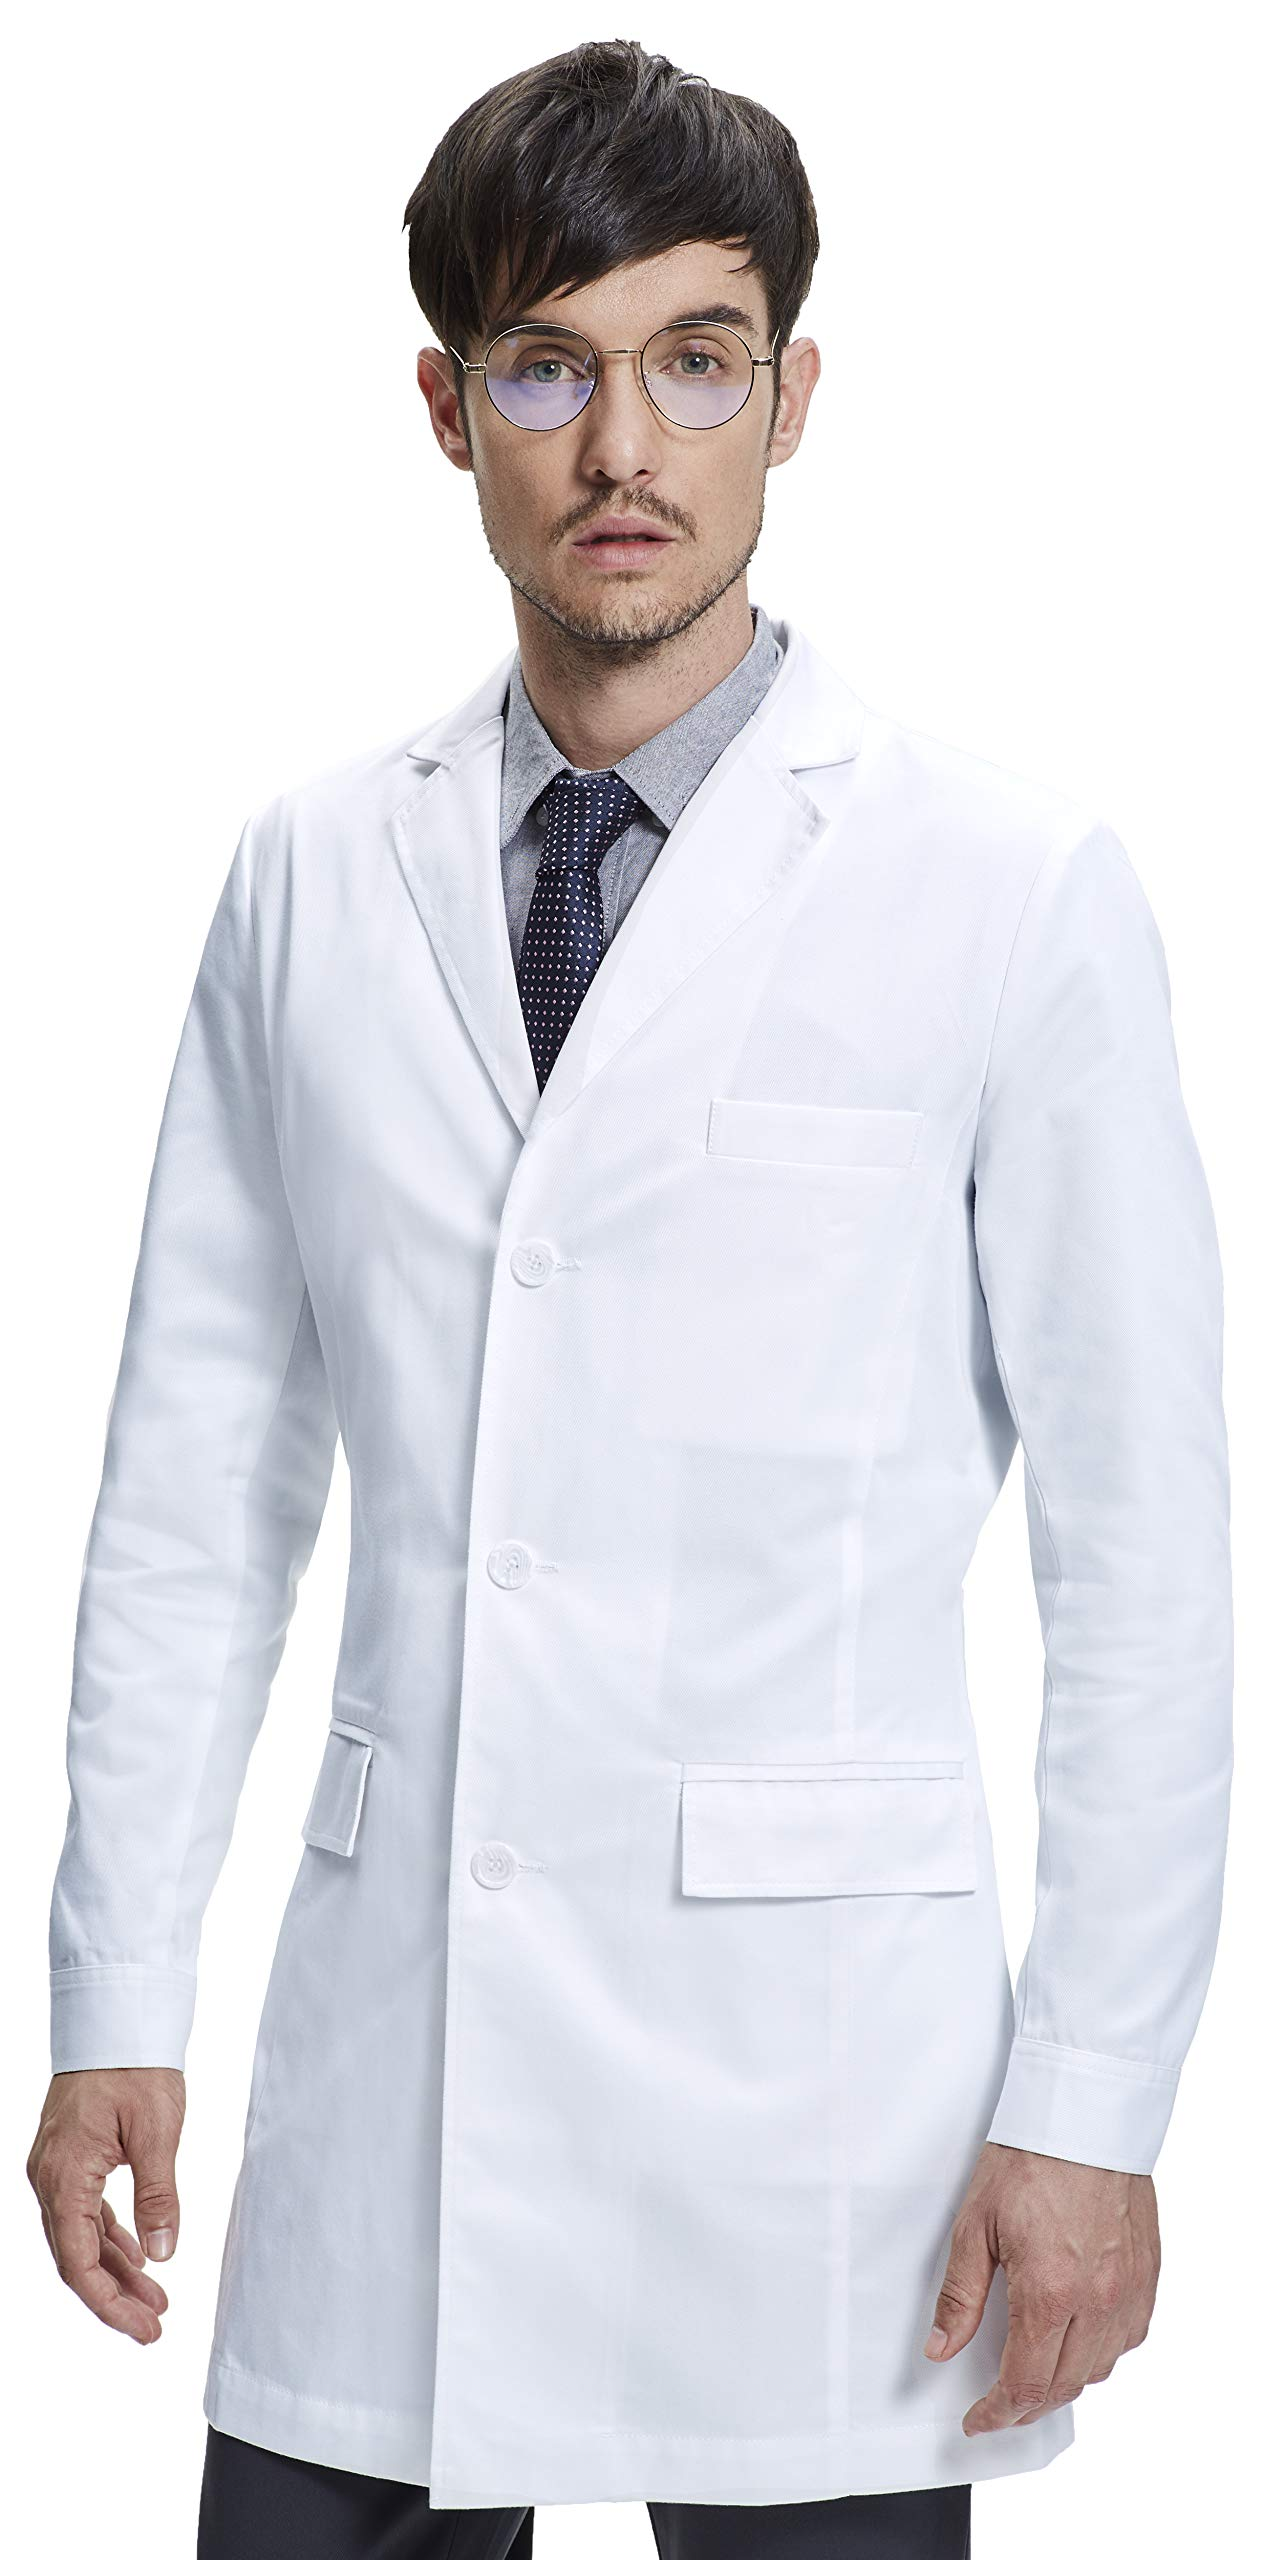 Dr. James Mens Tailored Fitted Consultation Lab Coat (36 Inch Length) Size S